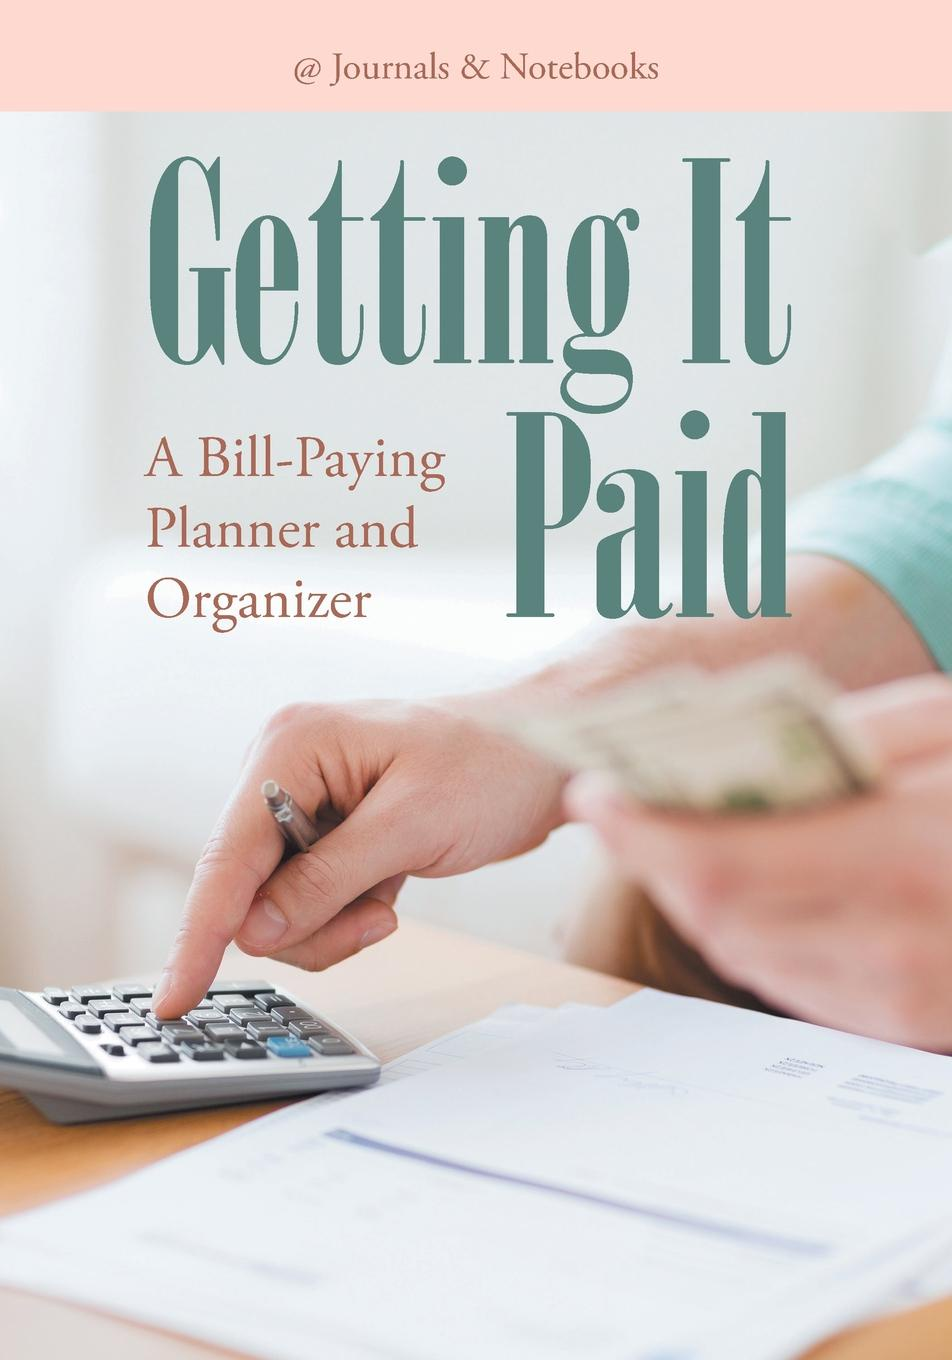 @Journals Notebooks Getting It Paid. A Bill-Paying Planner and Organizer jeffrey rattiner h getting started as a financial planner